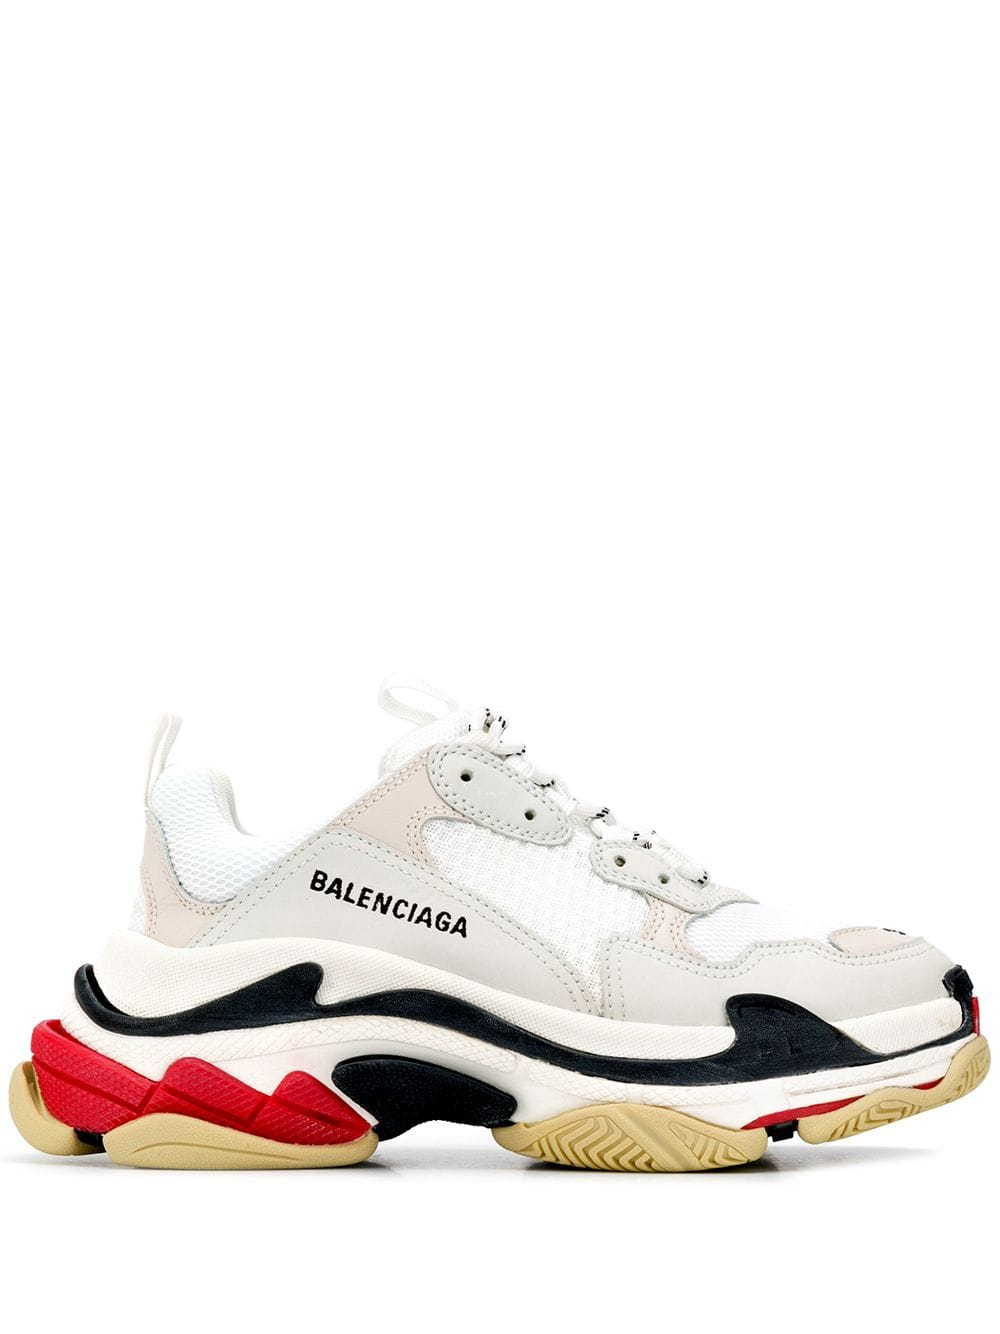 Balenciaga Triple S Runner V2 in Triple White New Depop